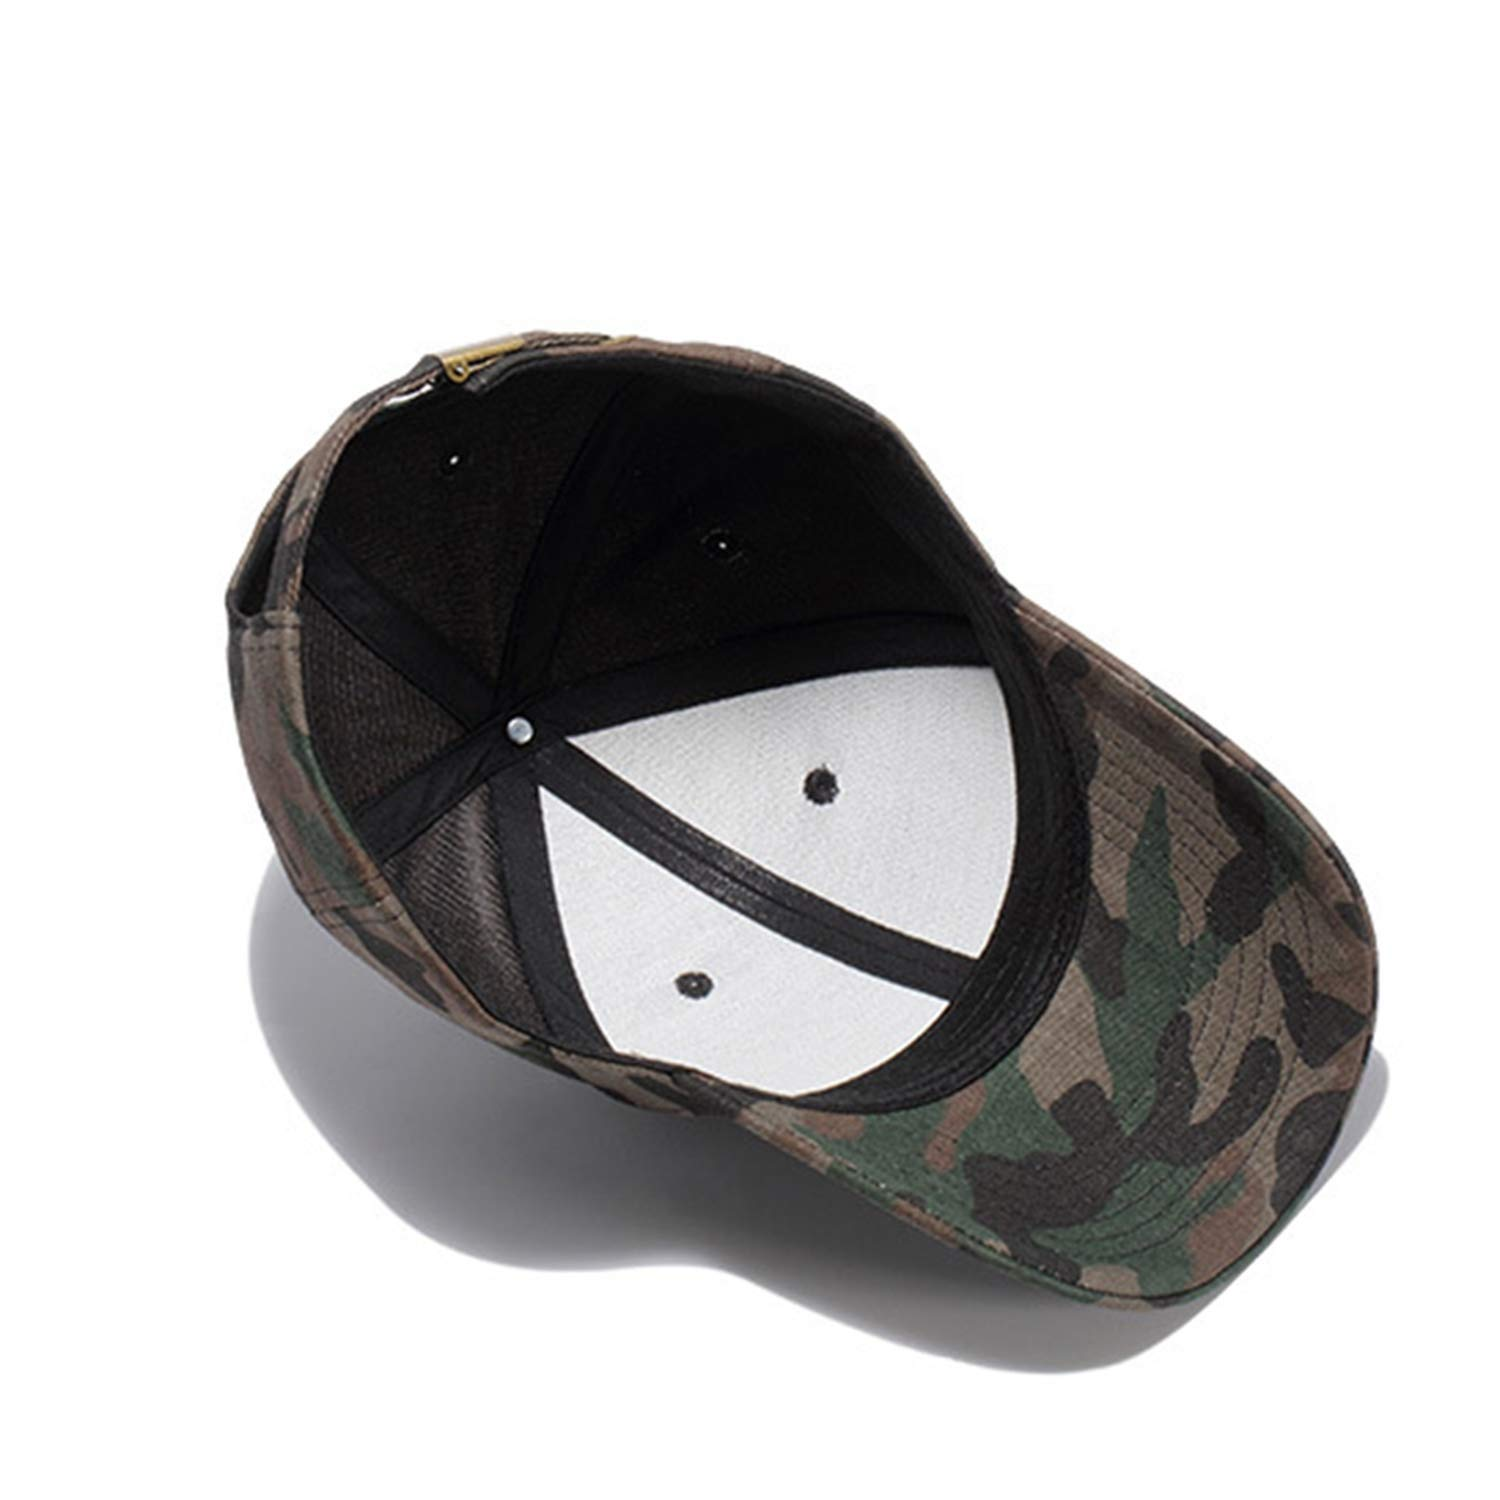 [AKIROKY] Quality Hip Hop Hats Spring Summer Men Women Baseball Cap Camouflage Snapback Bone High-Grade Cotton Sunscreen Caps, K333 Black at Amazon Mens ...